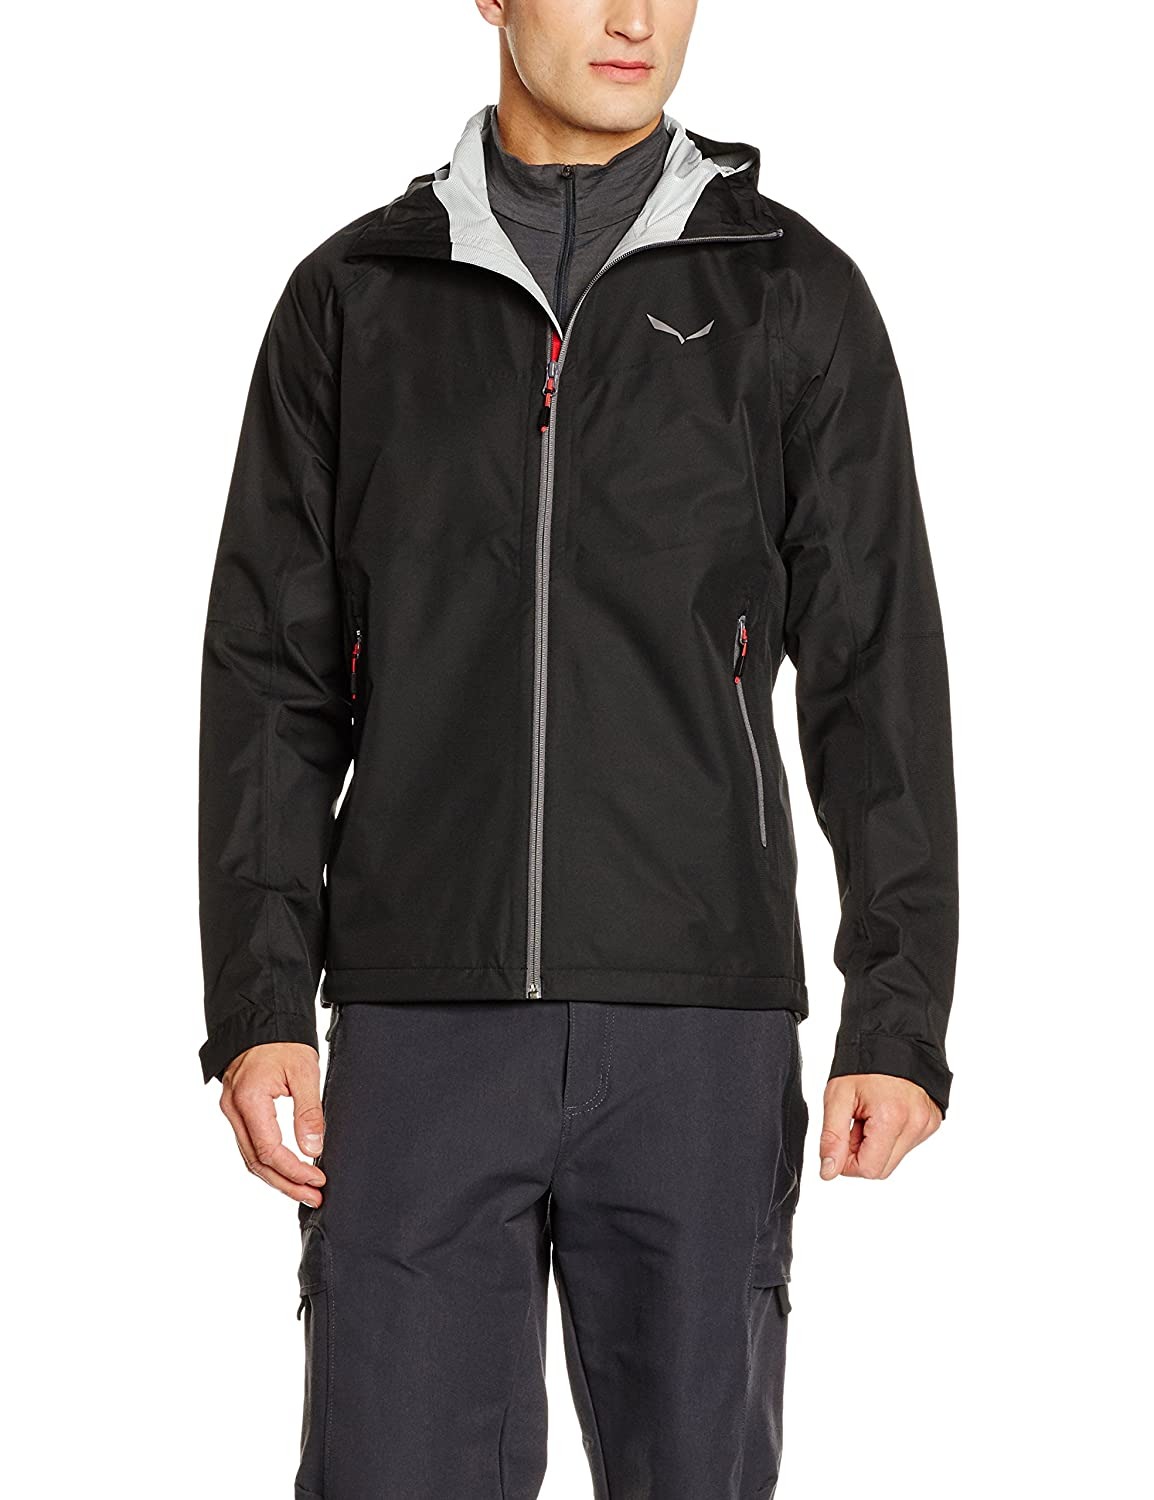 noir Out 0730 FR   2XL  Salewa PUEZ (Aqua 3) PTX M JKT Homme